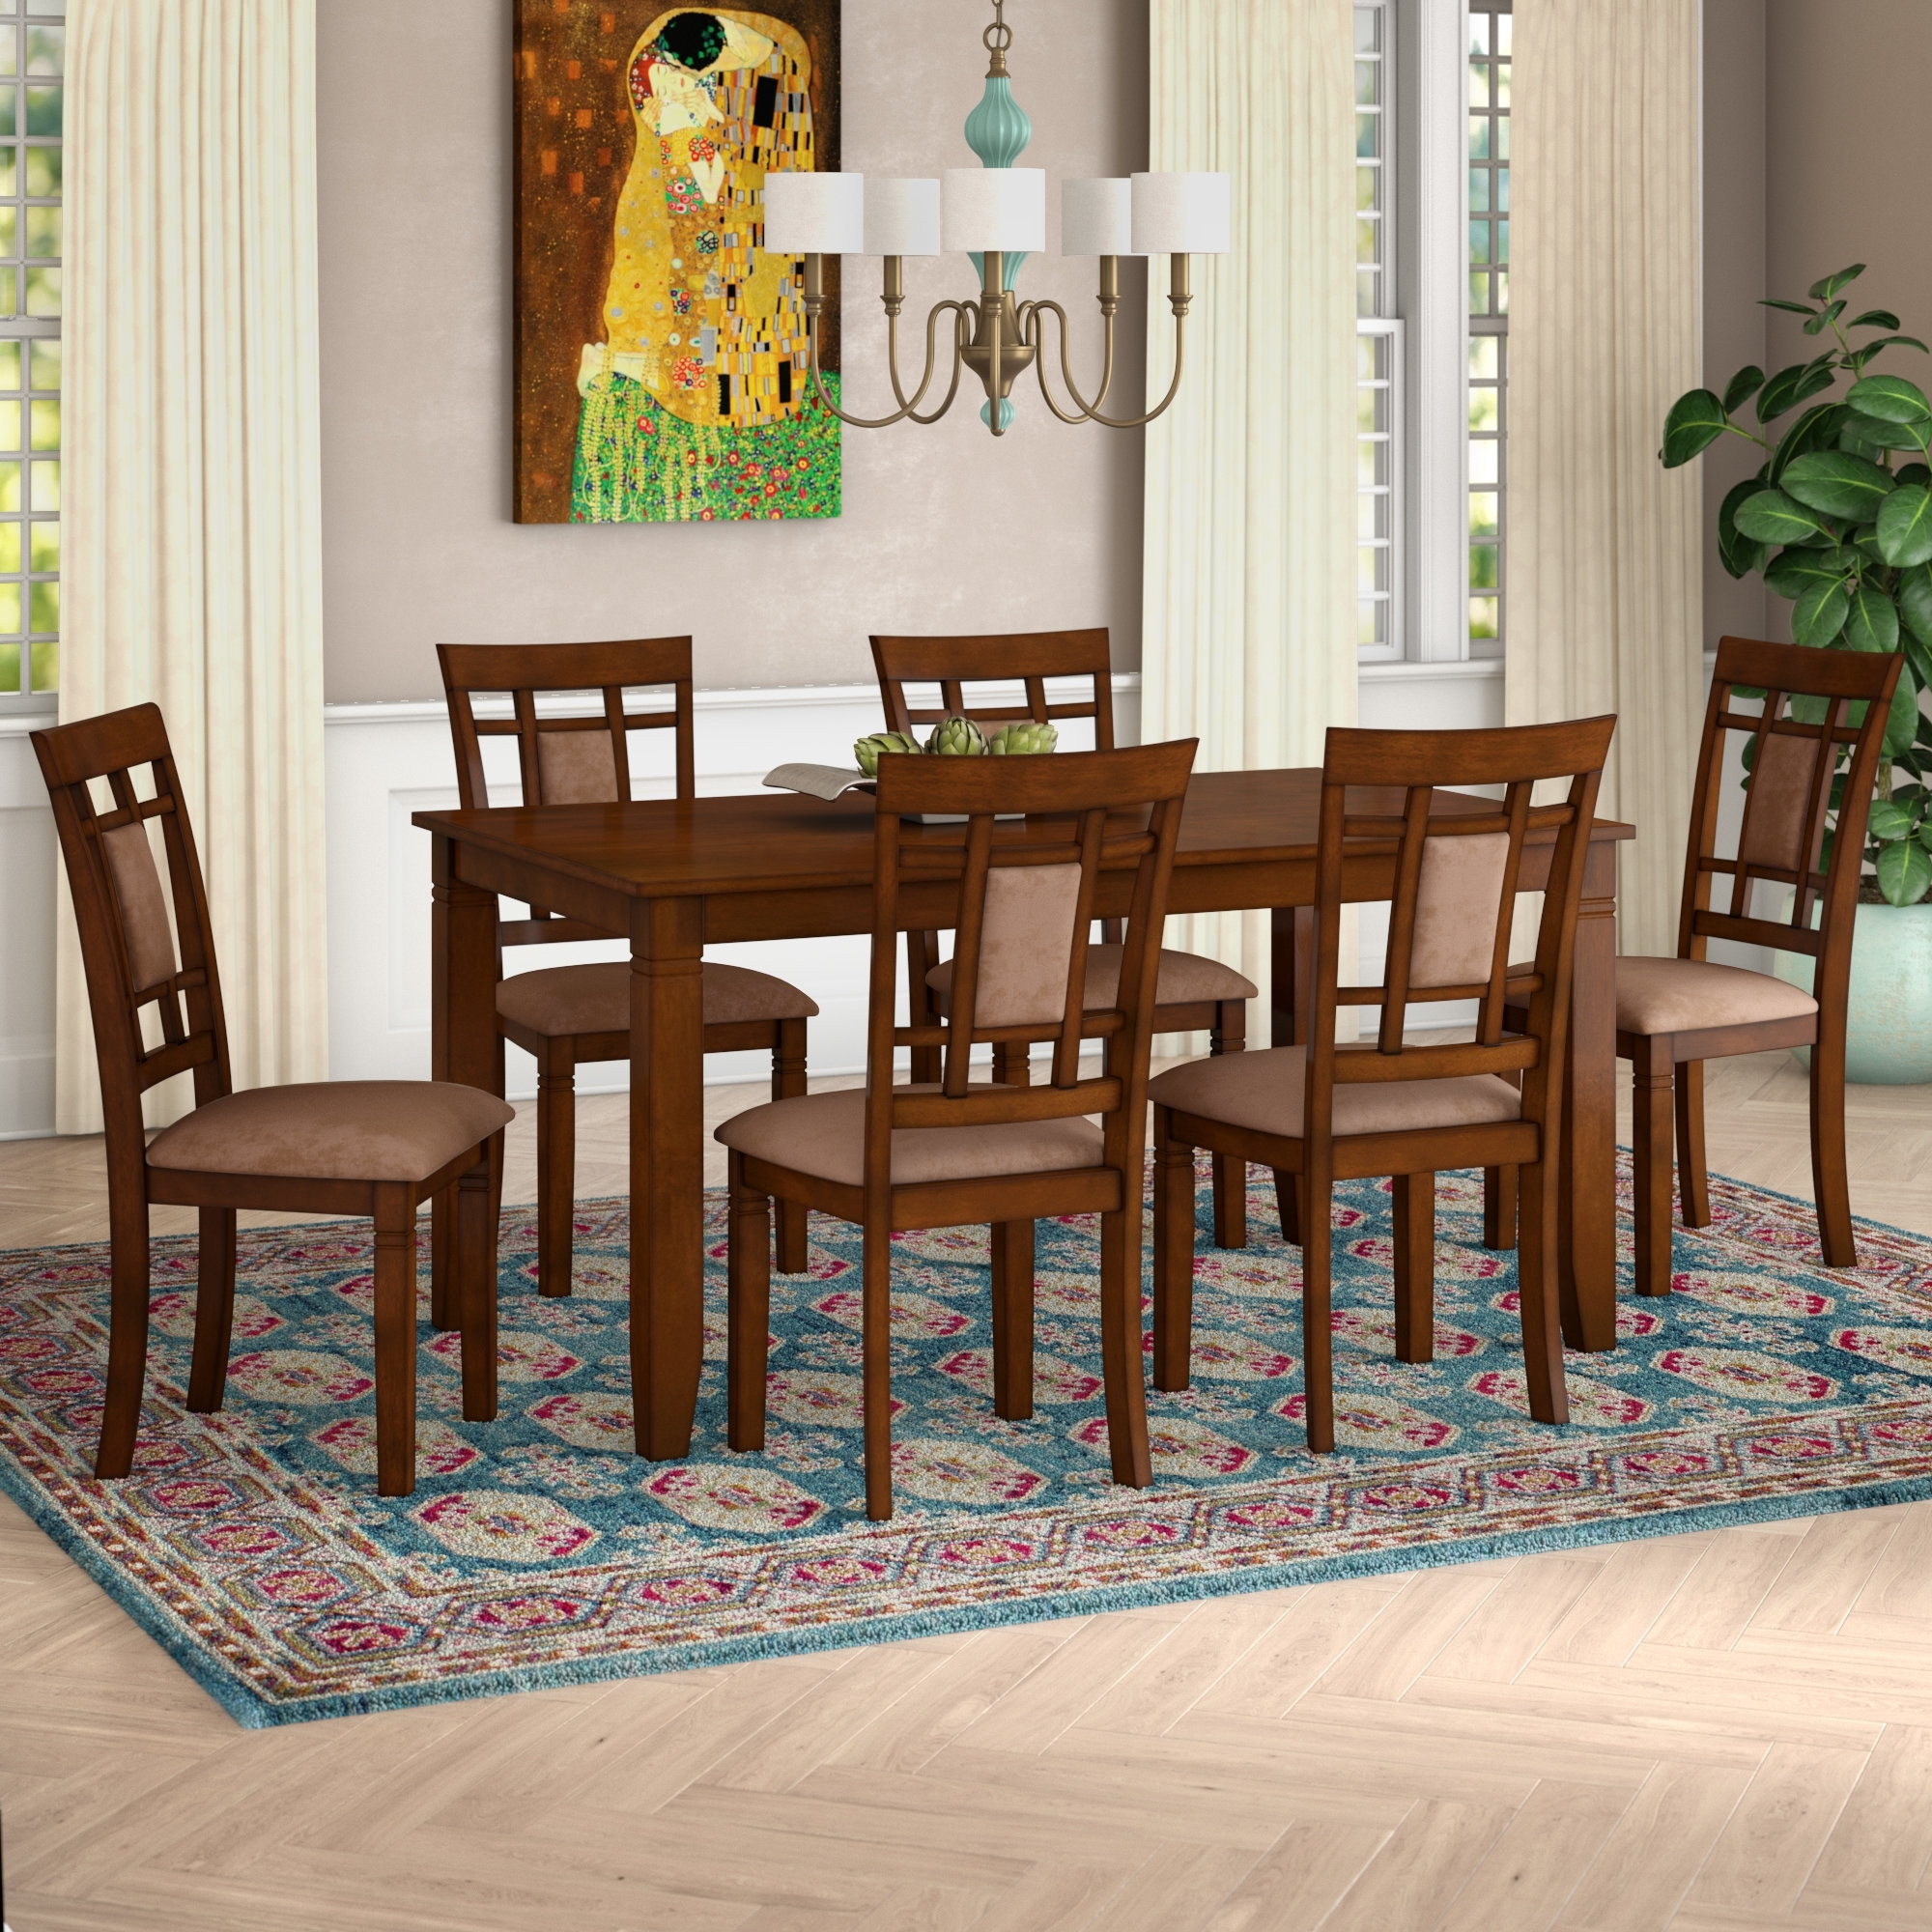 Wayfair With Regard To 2018 Norwood 6 Piece Rectangular Extension Dining Sets With Upholstered Side Chairs (View 7 of 25)